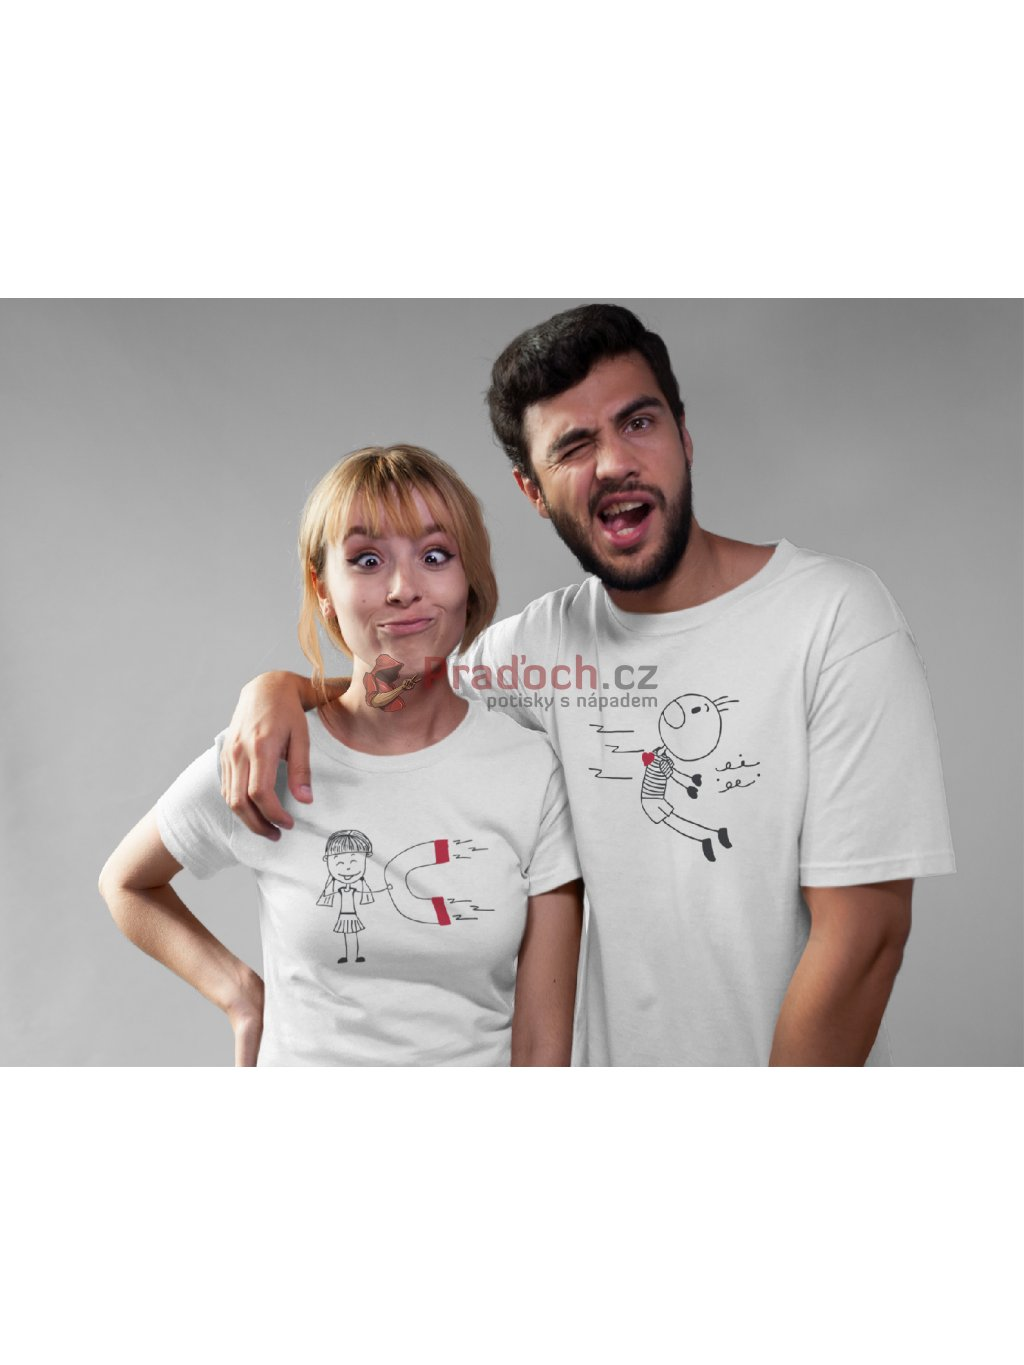 couple making faces while wearing round neck tees mockup a16270